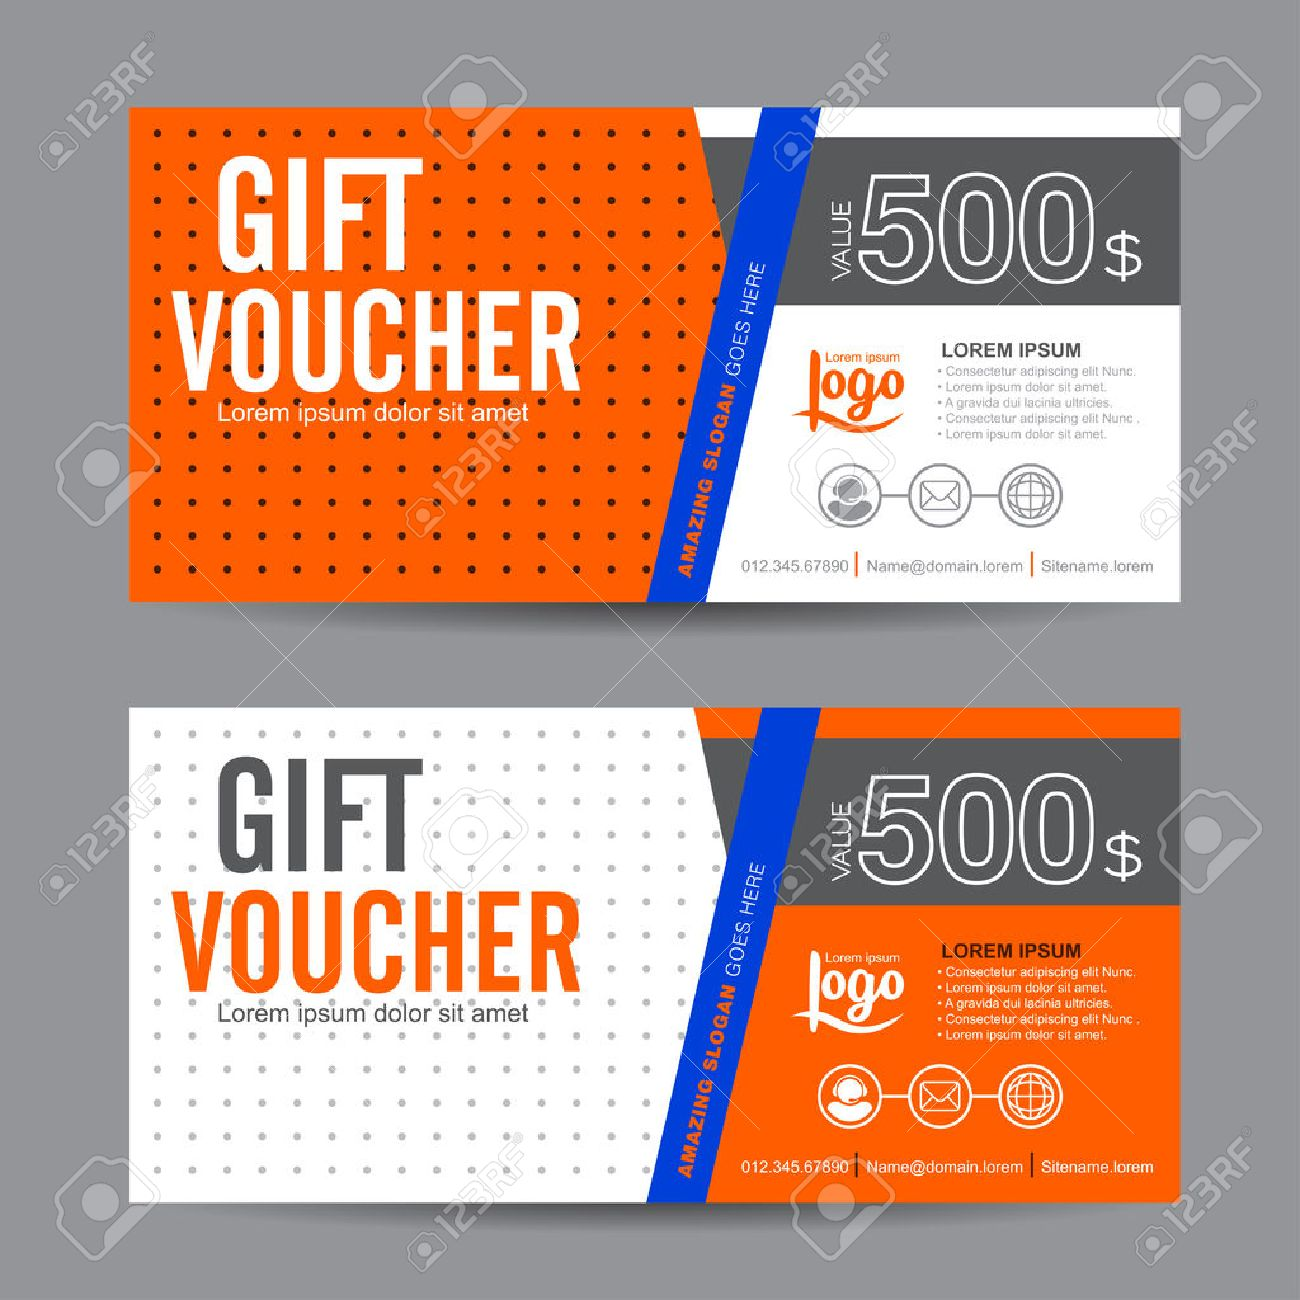 Gift Voucher Template With Colorful Patterncute Gift Voucher – Voucher Certificate Template